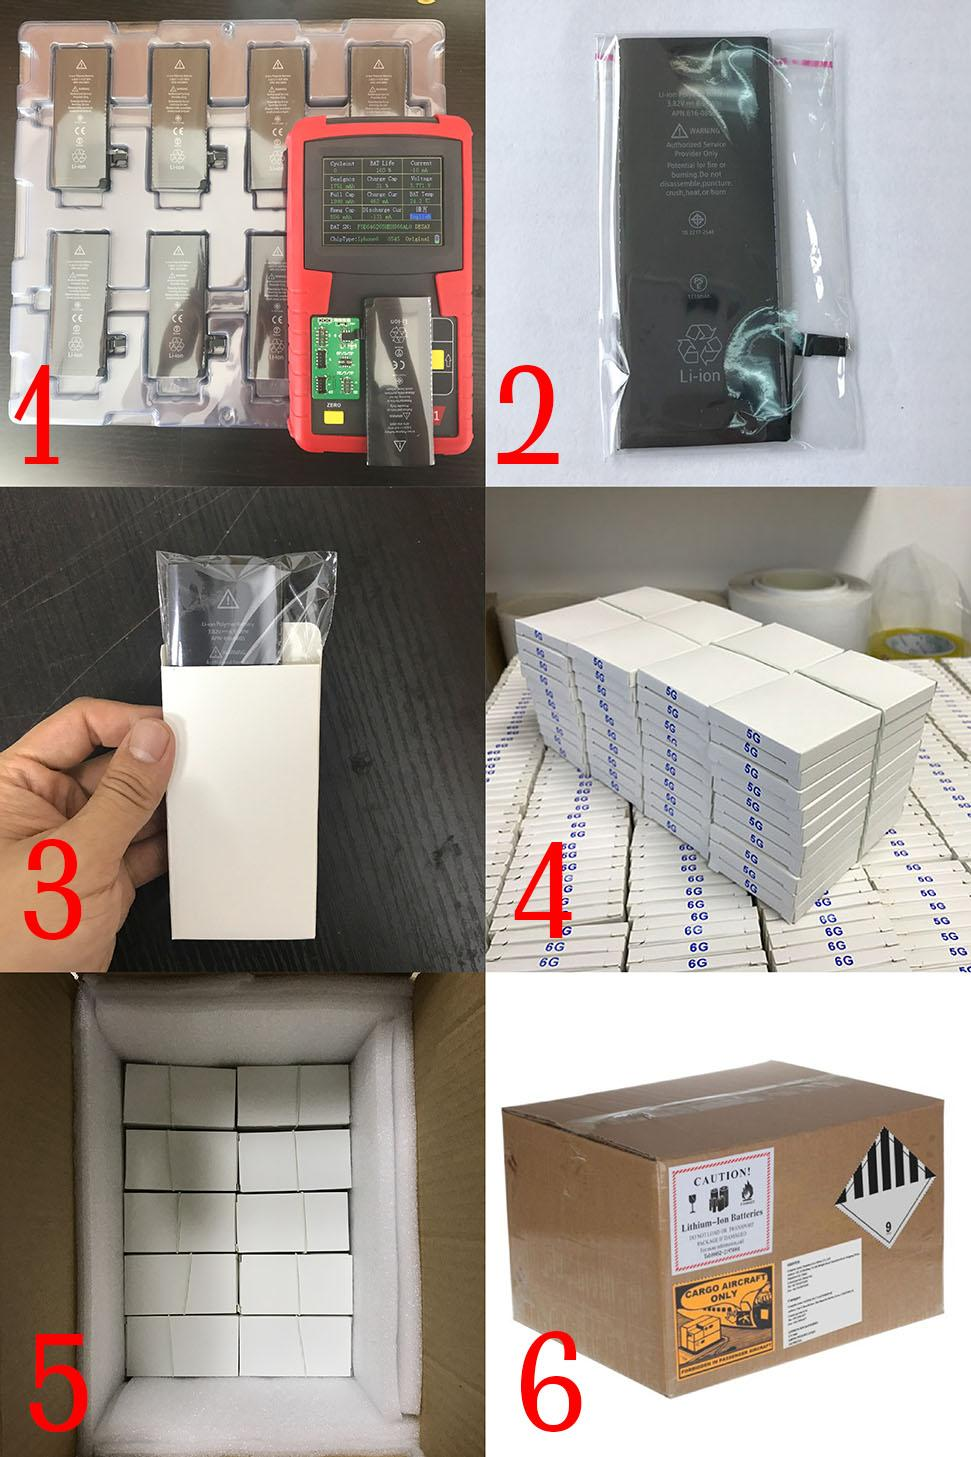 Wholesale 100% New AAAAA High Quality Replacement battery for iphone 4 5g 5s 5c 6g 6s 6plus 6splus 7g 7plus With Package Free UPS Fedex Ship